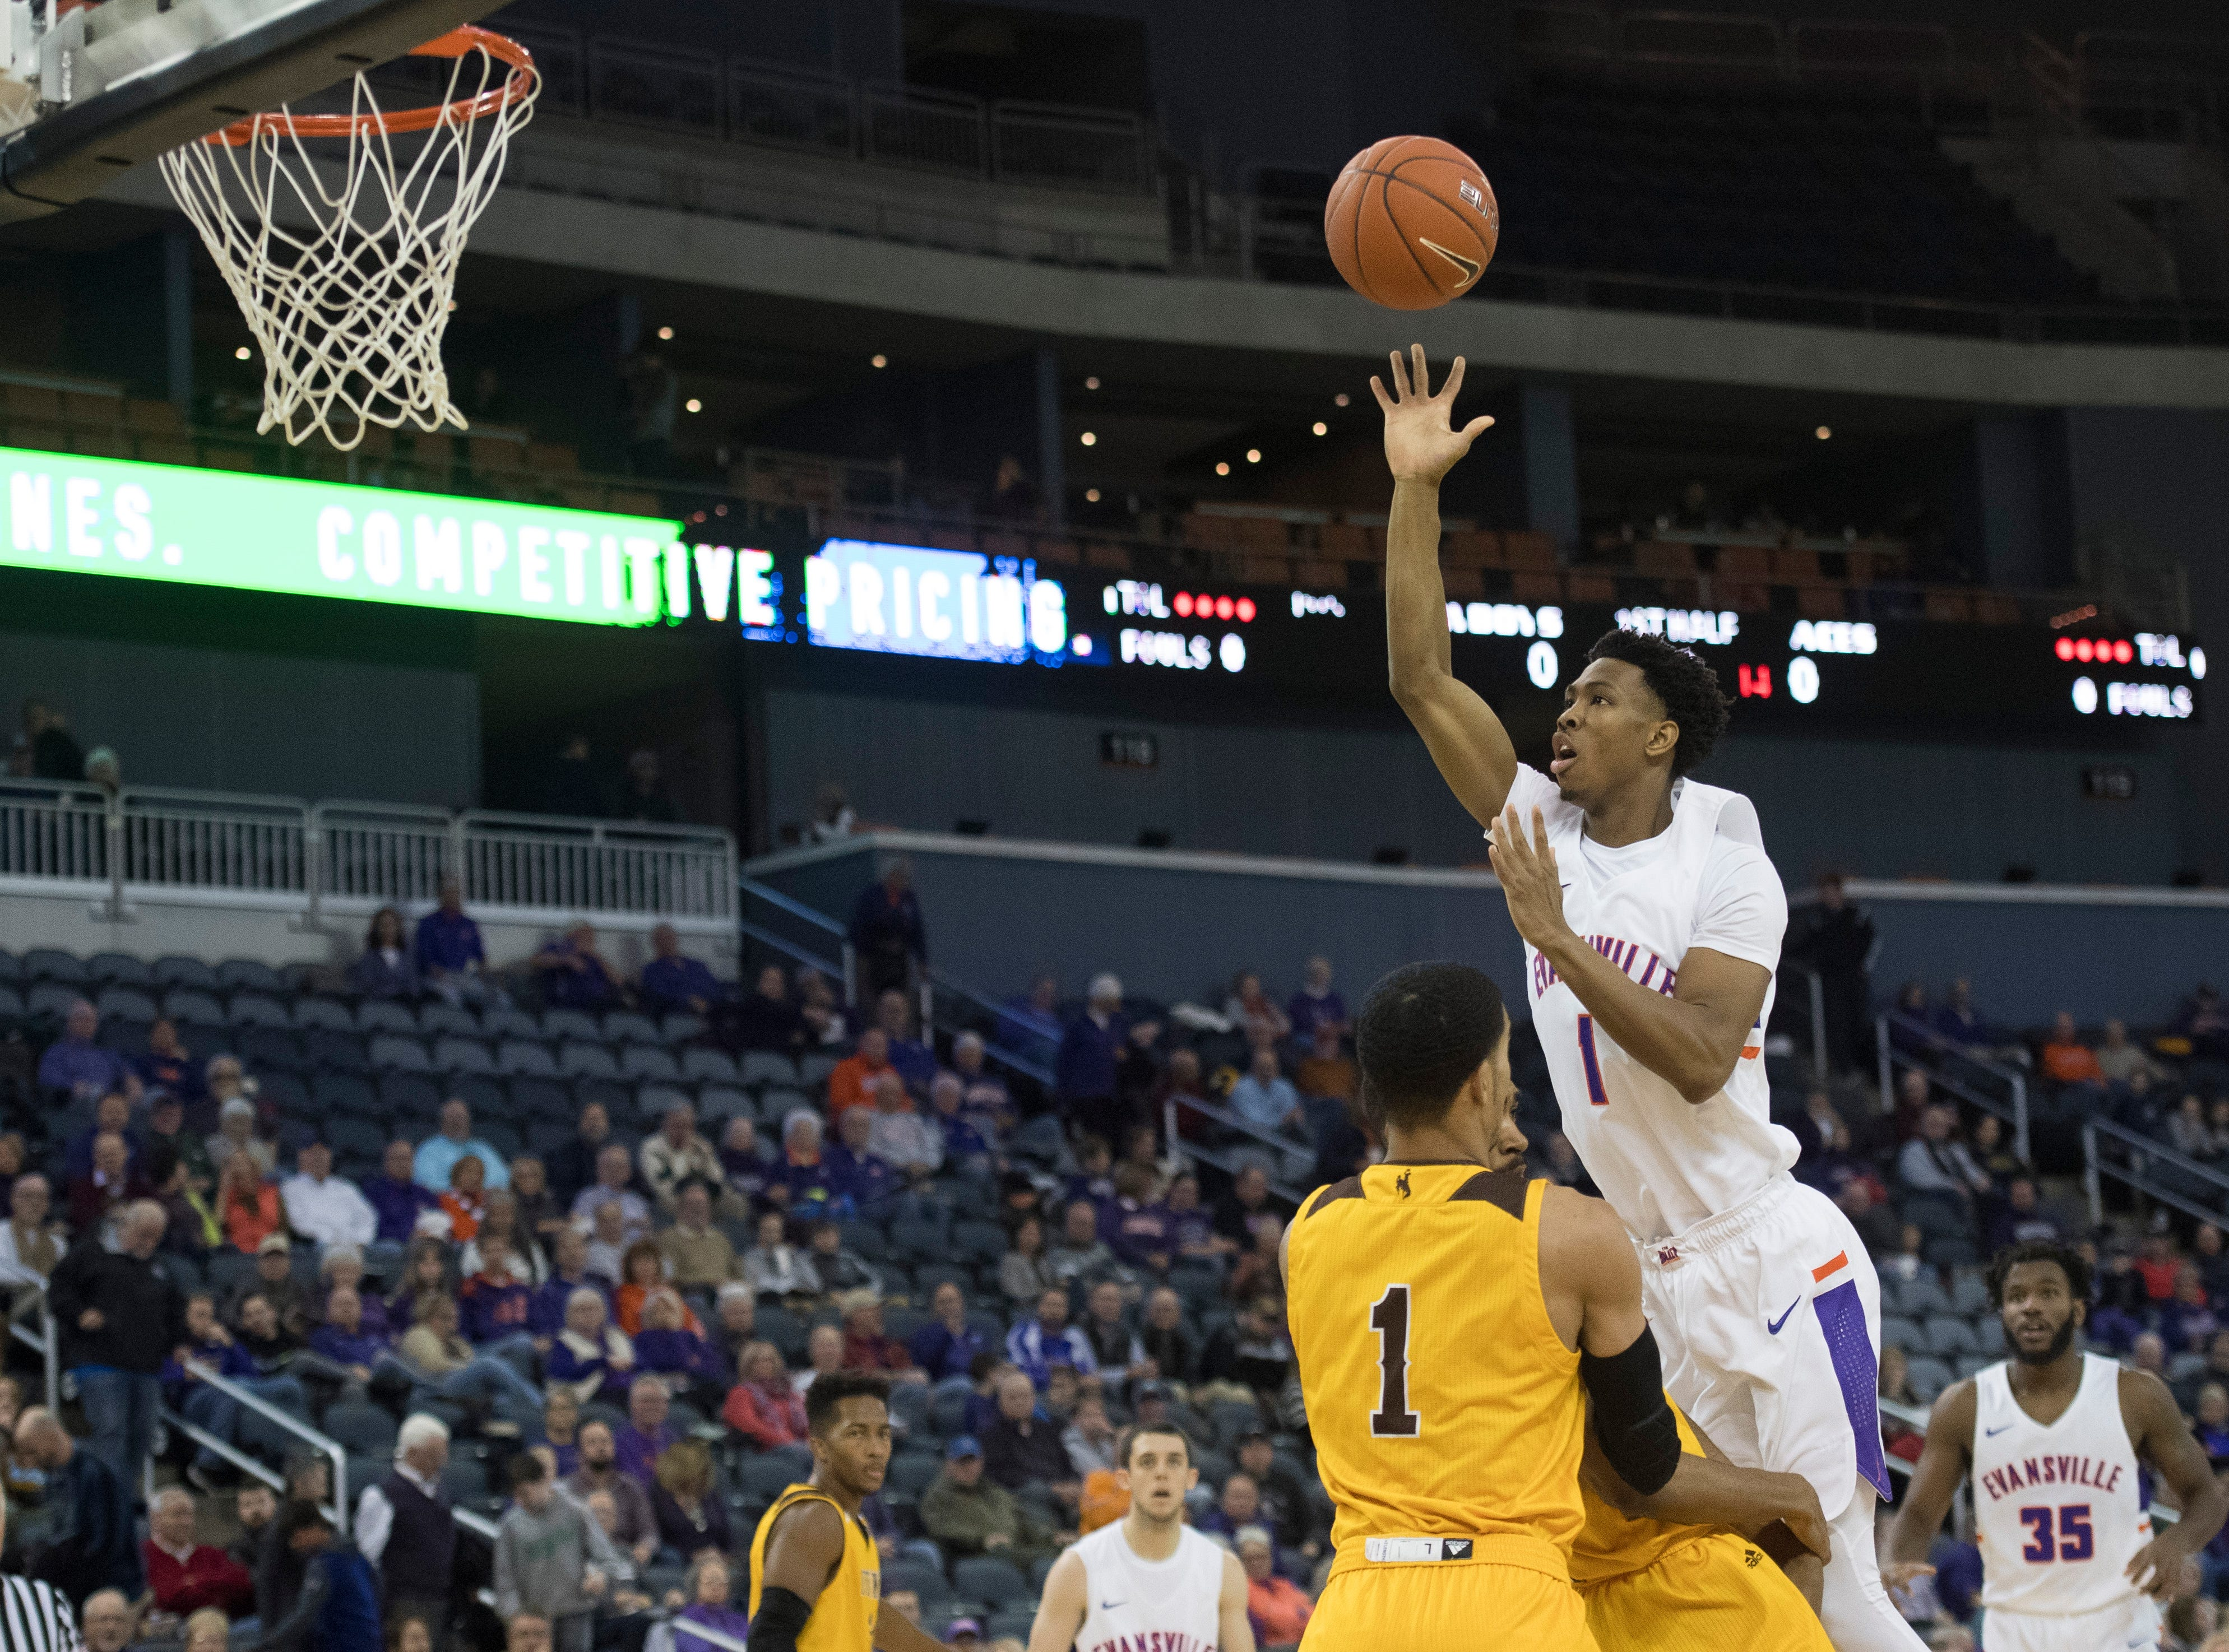 UE's Marty Hill (1) releases the ball during the UE vs Wyoming game at the Ford Center Wednesday, Nov. 28, 2018. UE won 86-76.